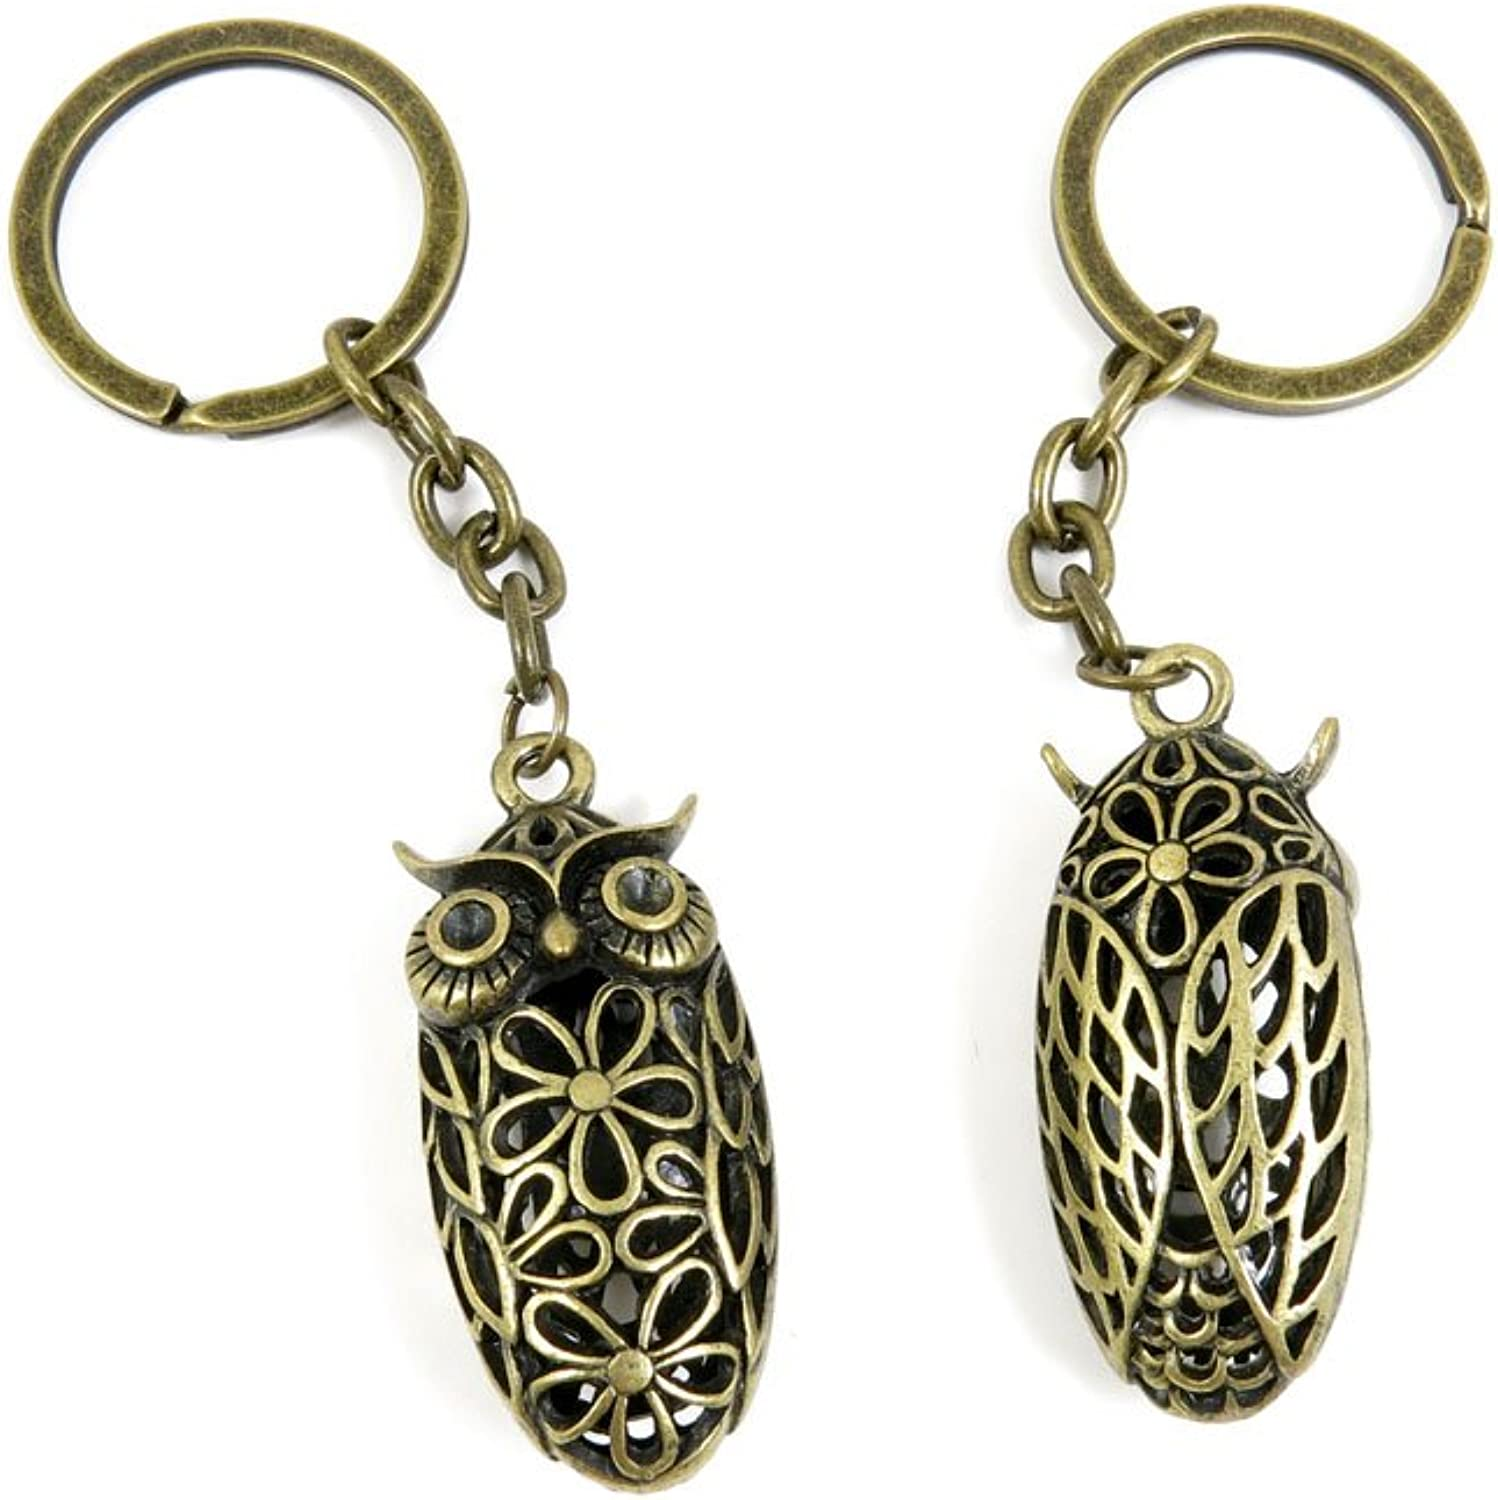 60 Pieces Fashion Jewelry Keyring Keychain Door Car Key Tag Ring Chain Supplier Supply Wholesale Bulk Lots K8WG8 Hollow Frog Prince